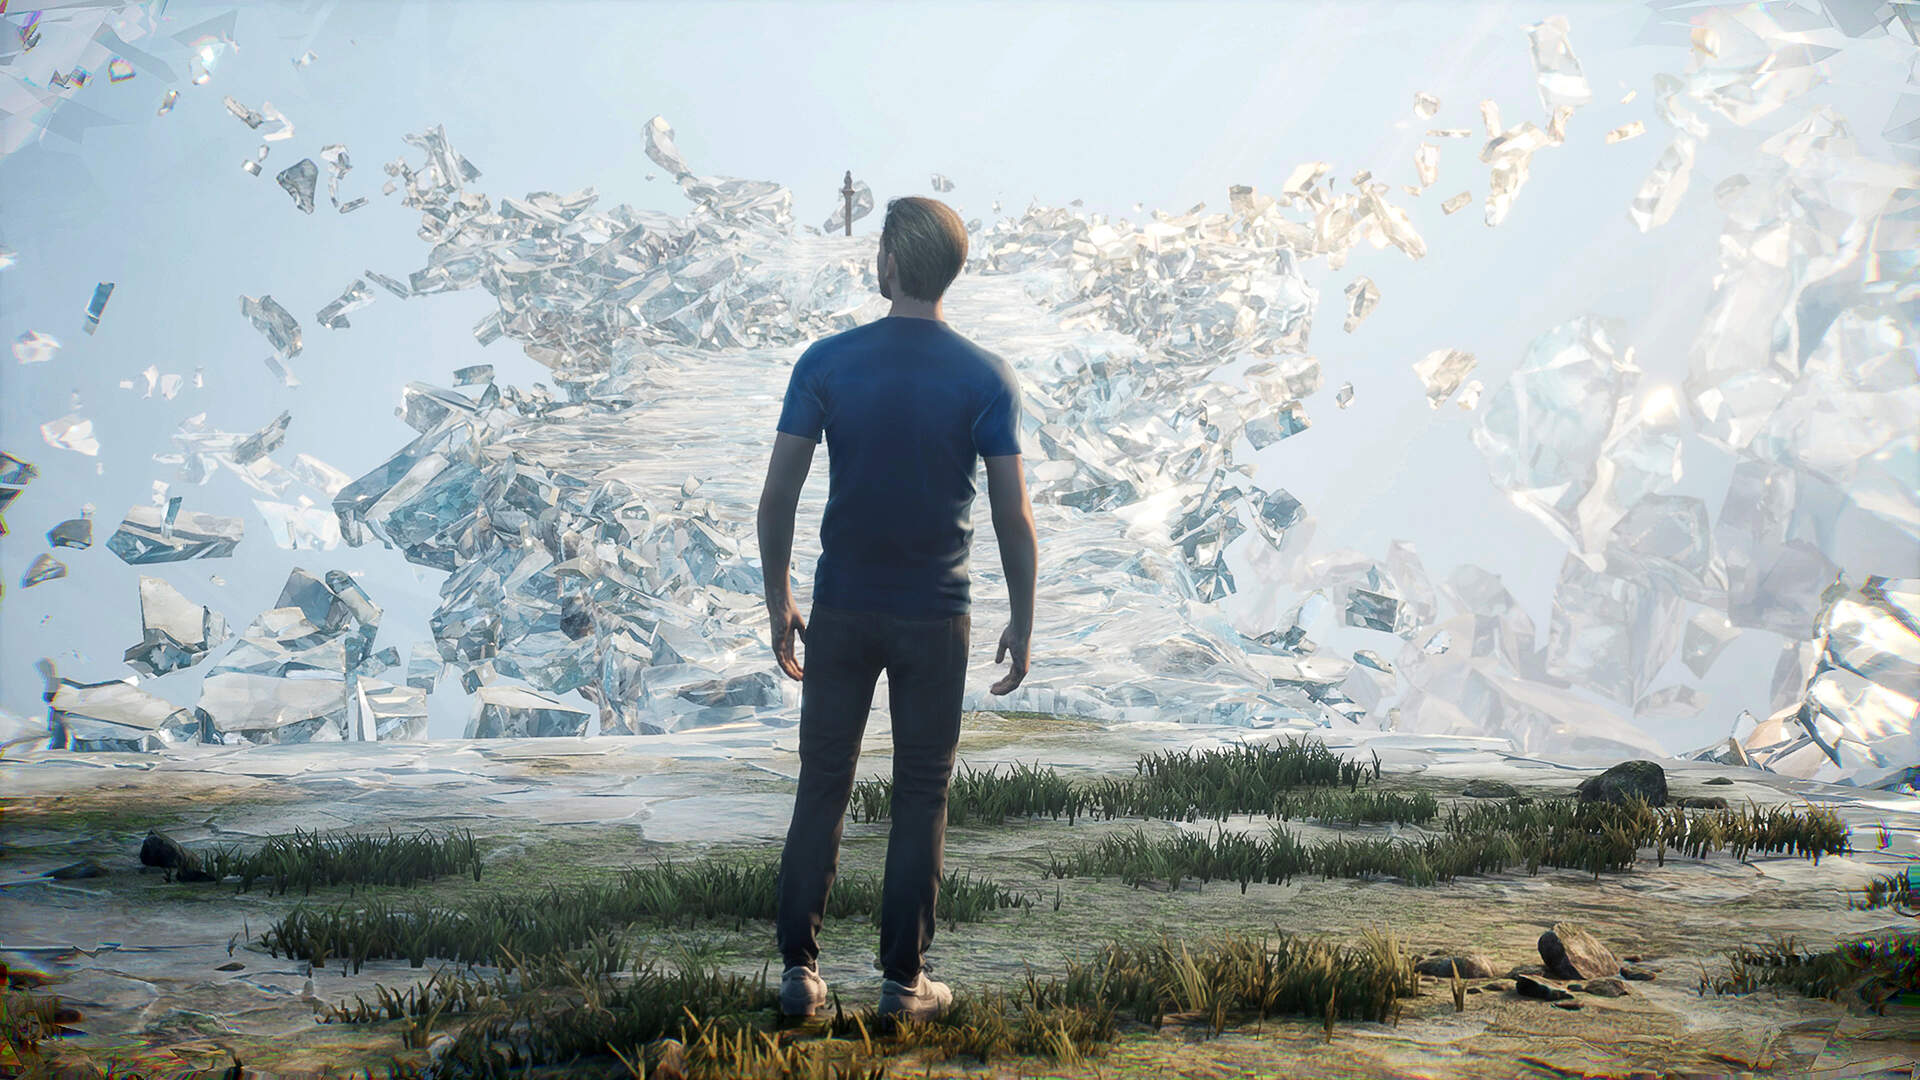 Twin Mirror, Dontnod's New Thriller, Gets Off to a Slow Start